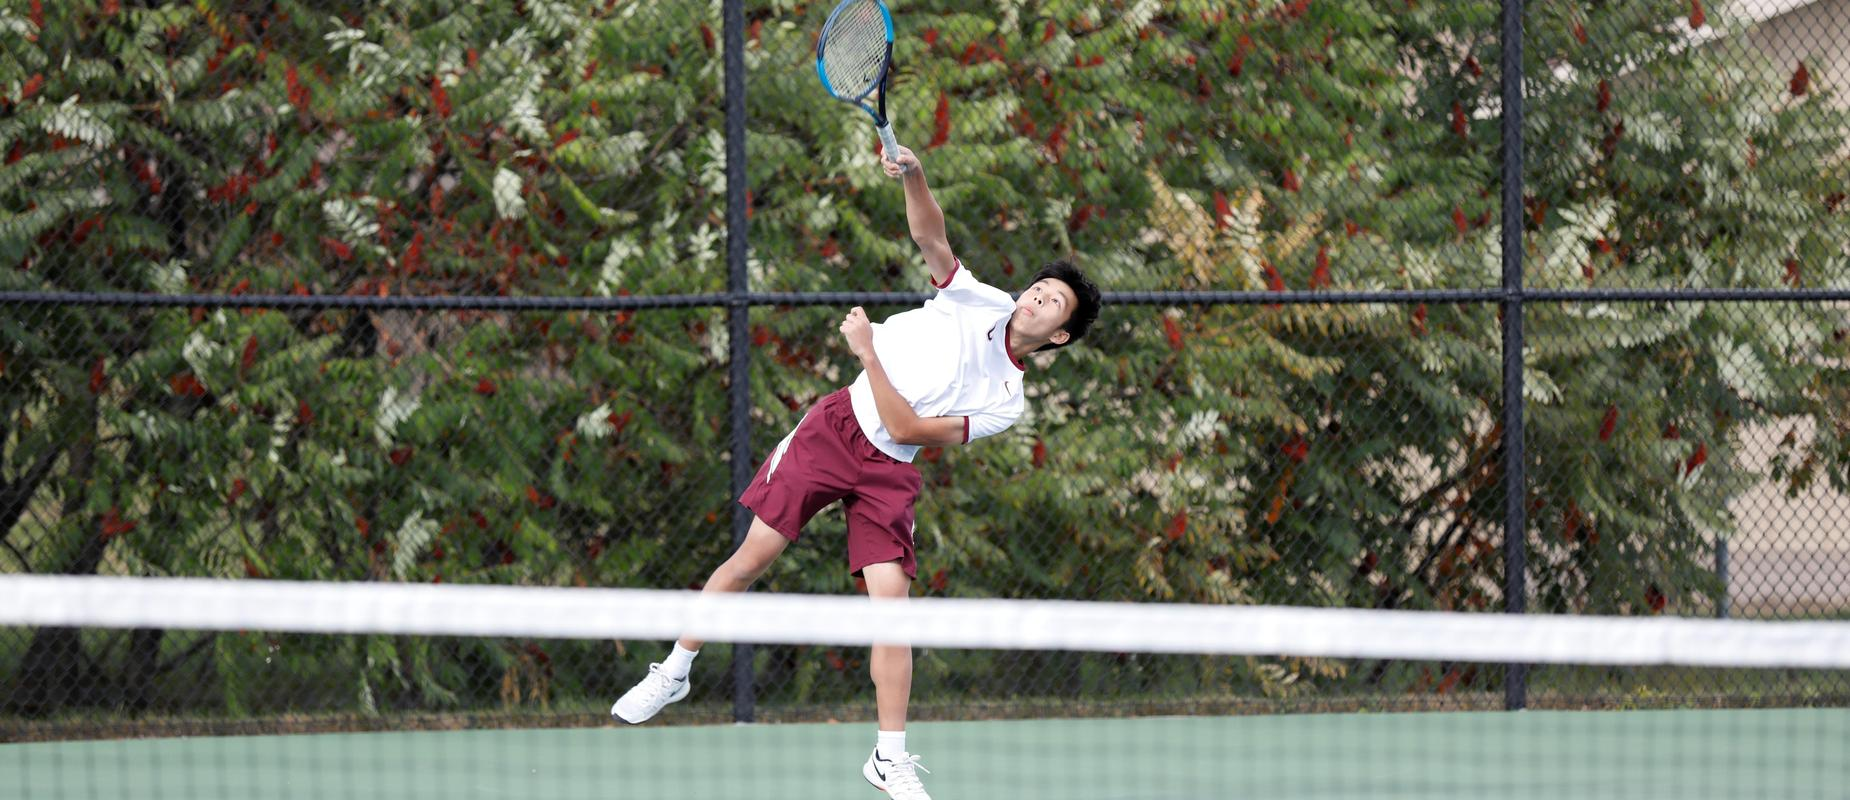 varsity tennis player on court with bushes behind fence